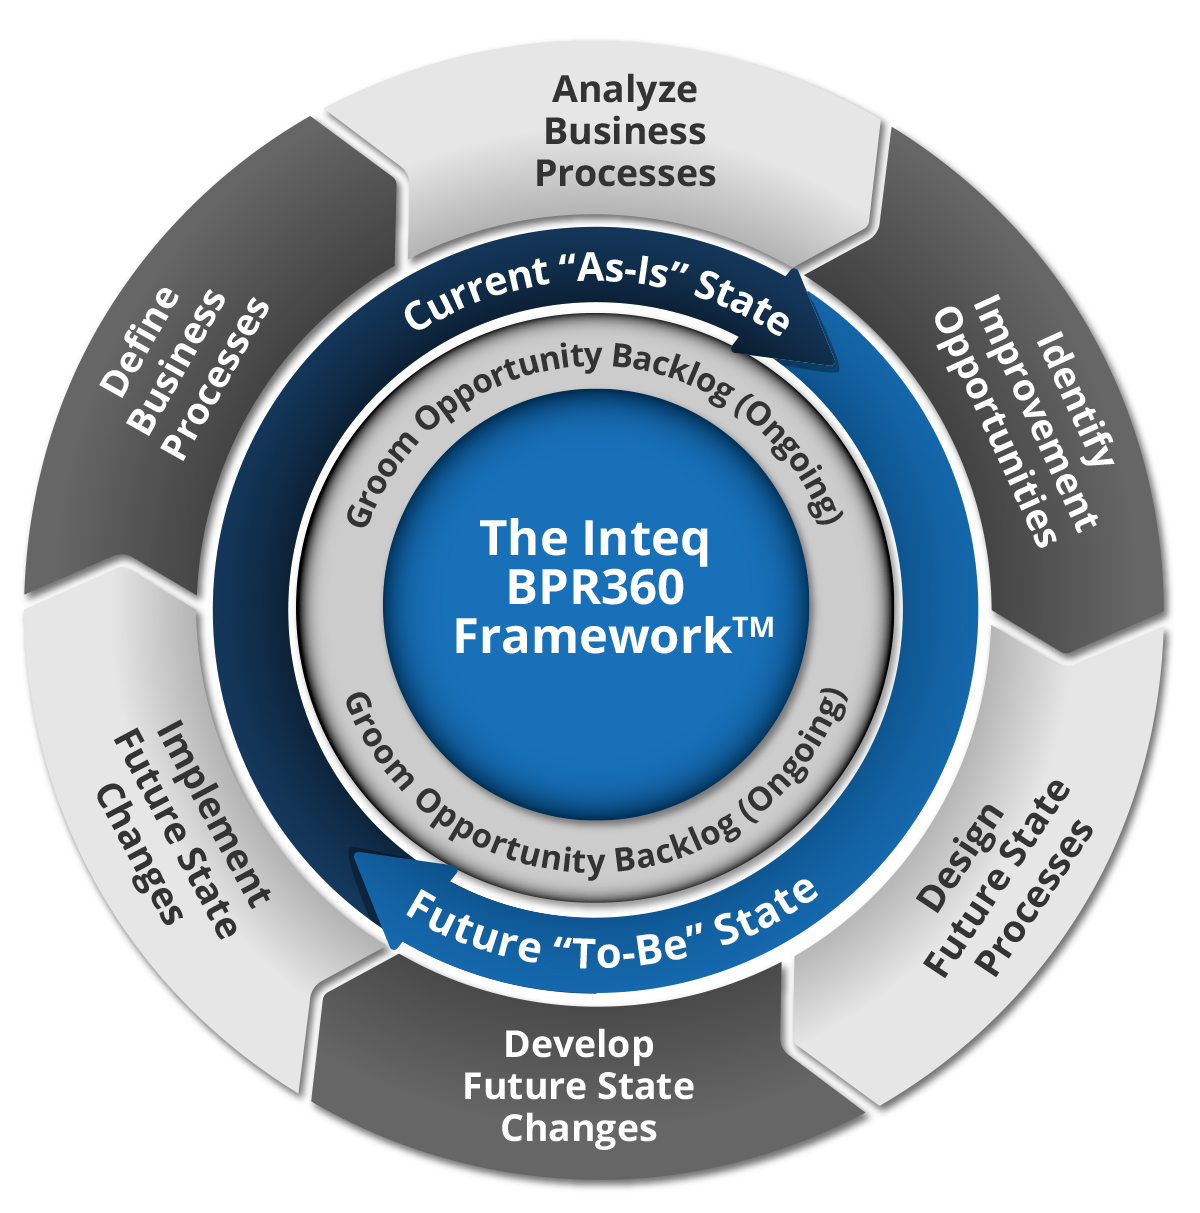 BPR 360 Framework and System Analyst Training